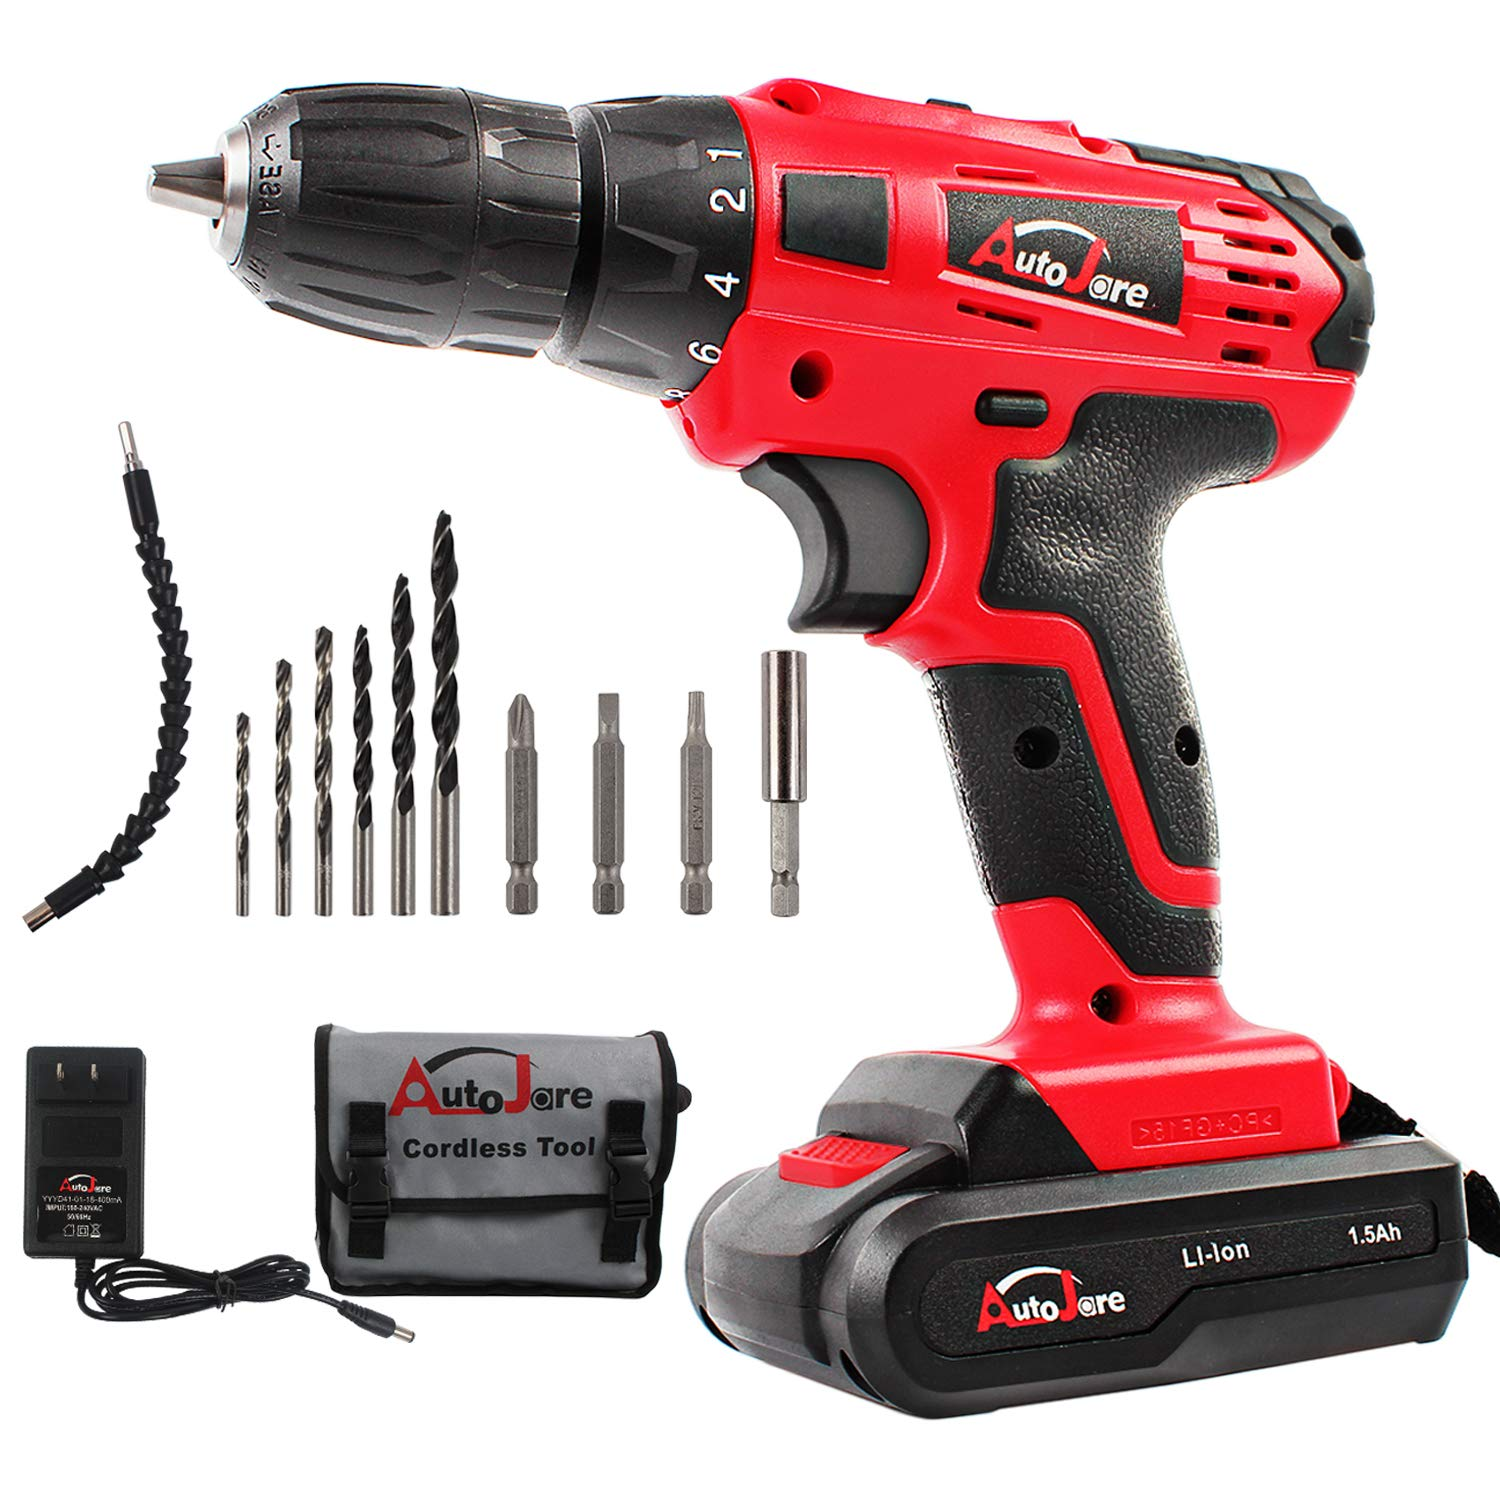 20V Max 18V Electric Cordless Drill – 3 8 Keyless Chuck, Lightweight Cordless Drill,Rechargeable Lithium-Ion battery Drill Driver,Durable Fast Application Speeds Dirll kit by AUTOJARE